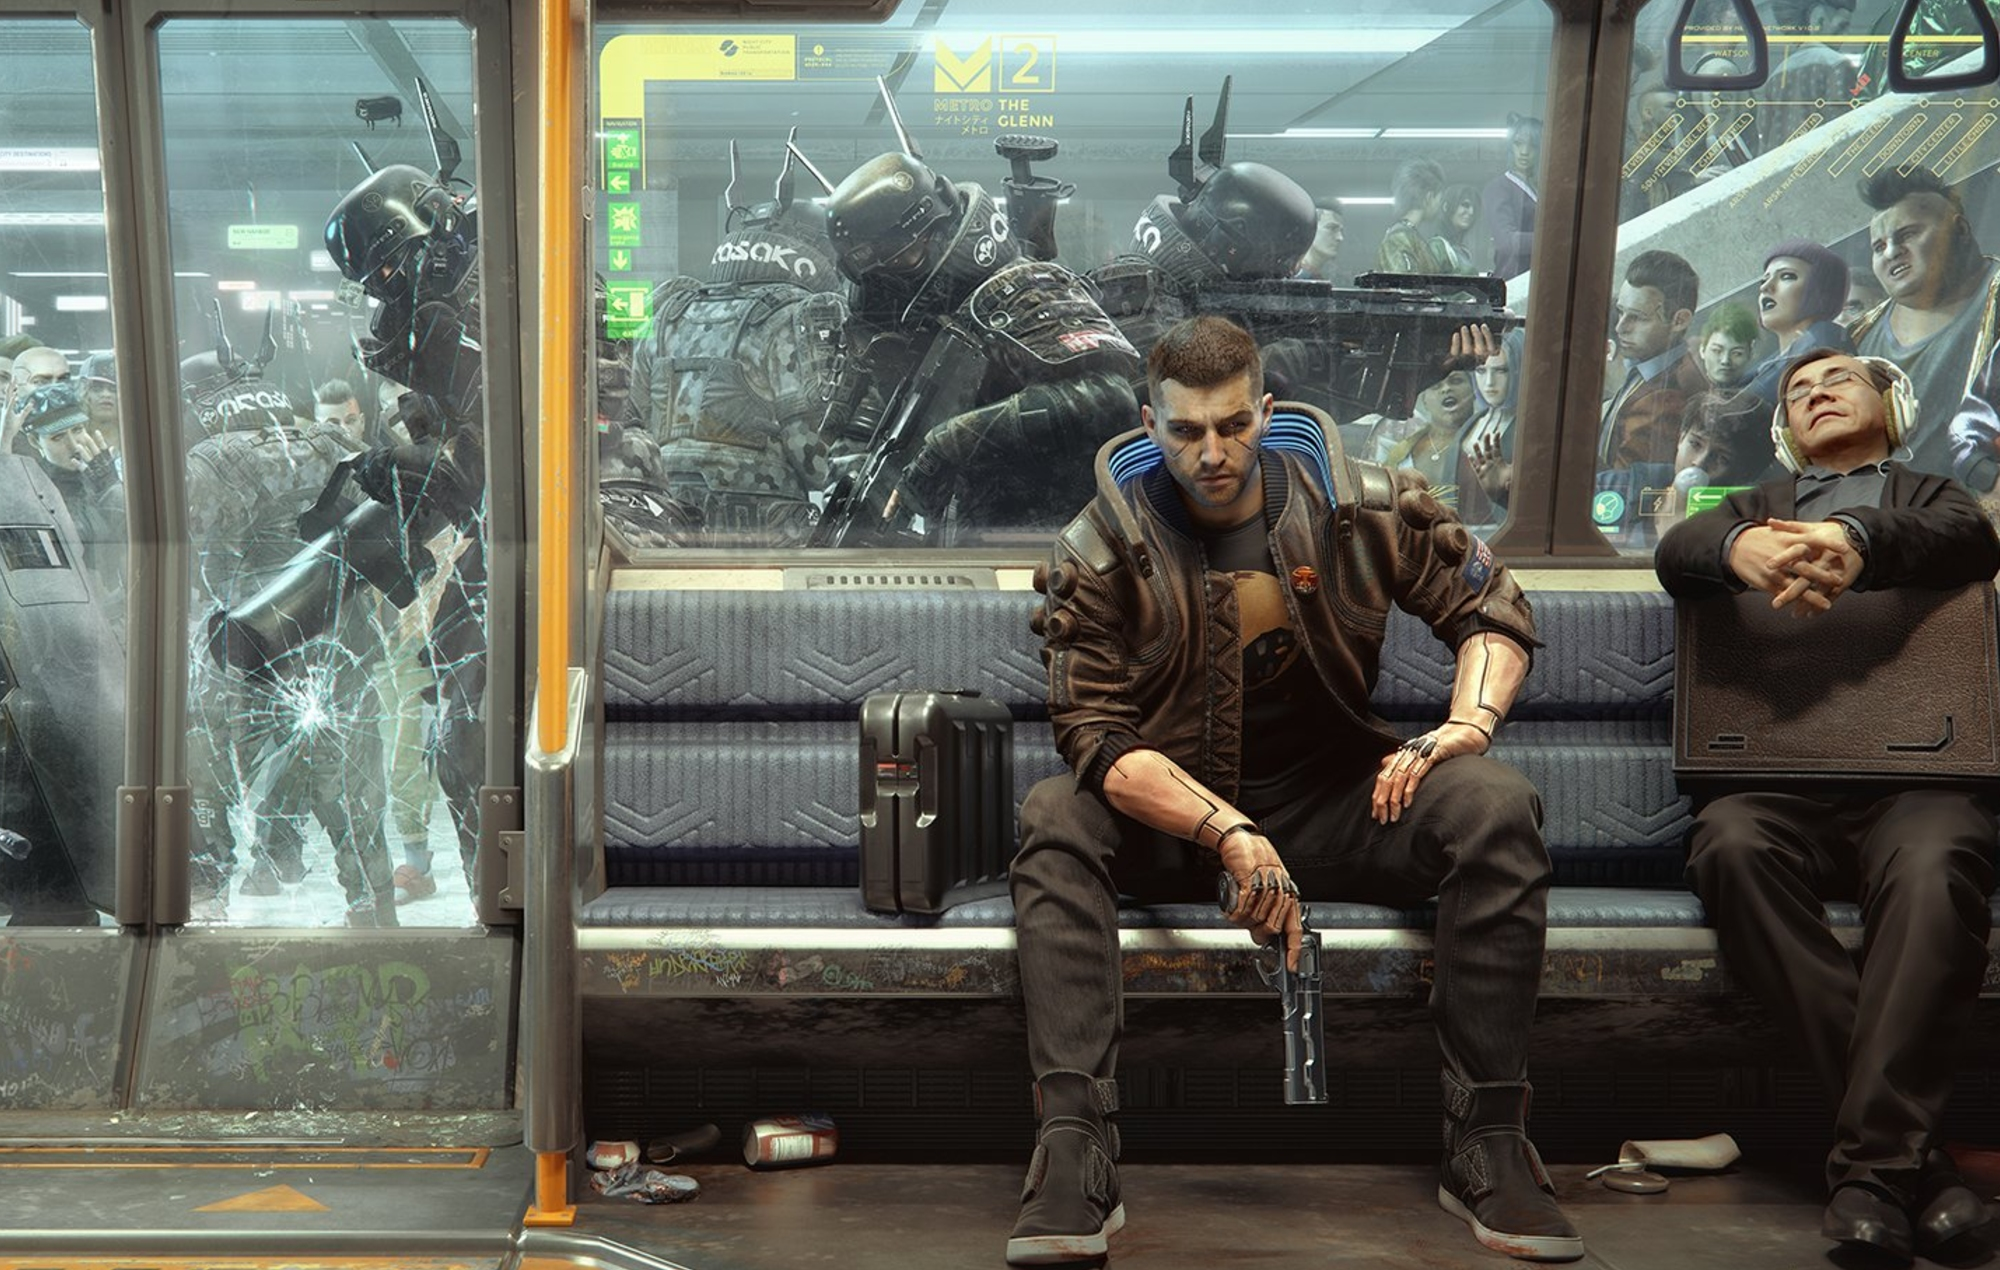 Microsoft extend refund policy to anyone who purchased 'Cyberpunk 2077'